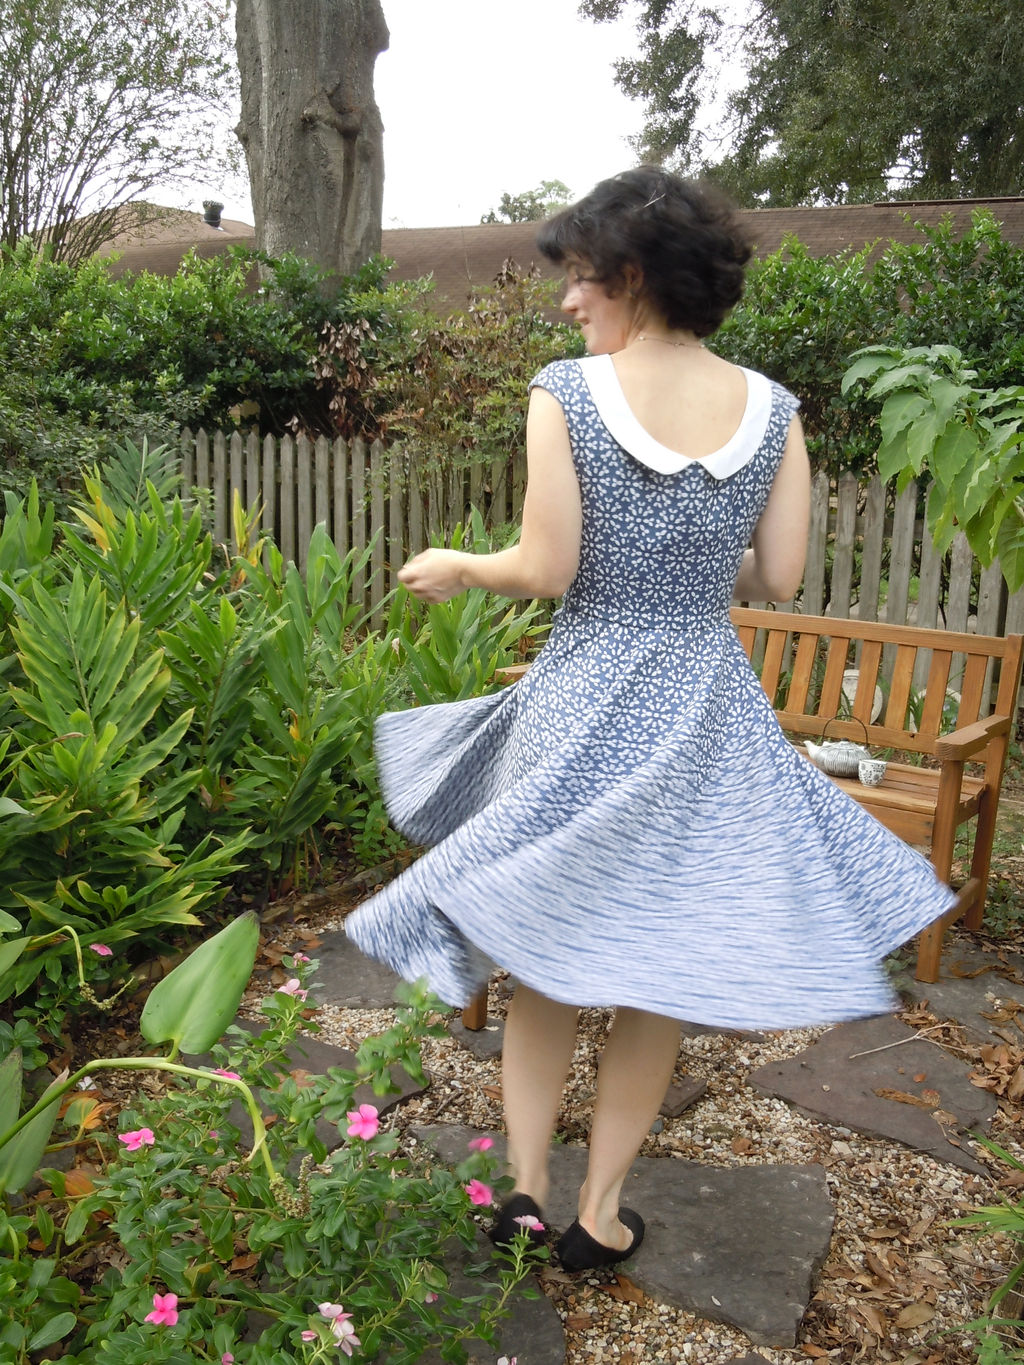 blue jacquard dress with a full circle skirt and white collar and button detail